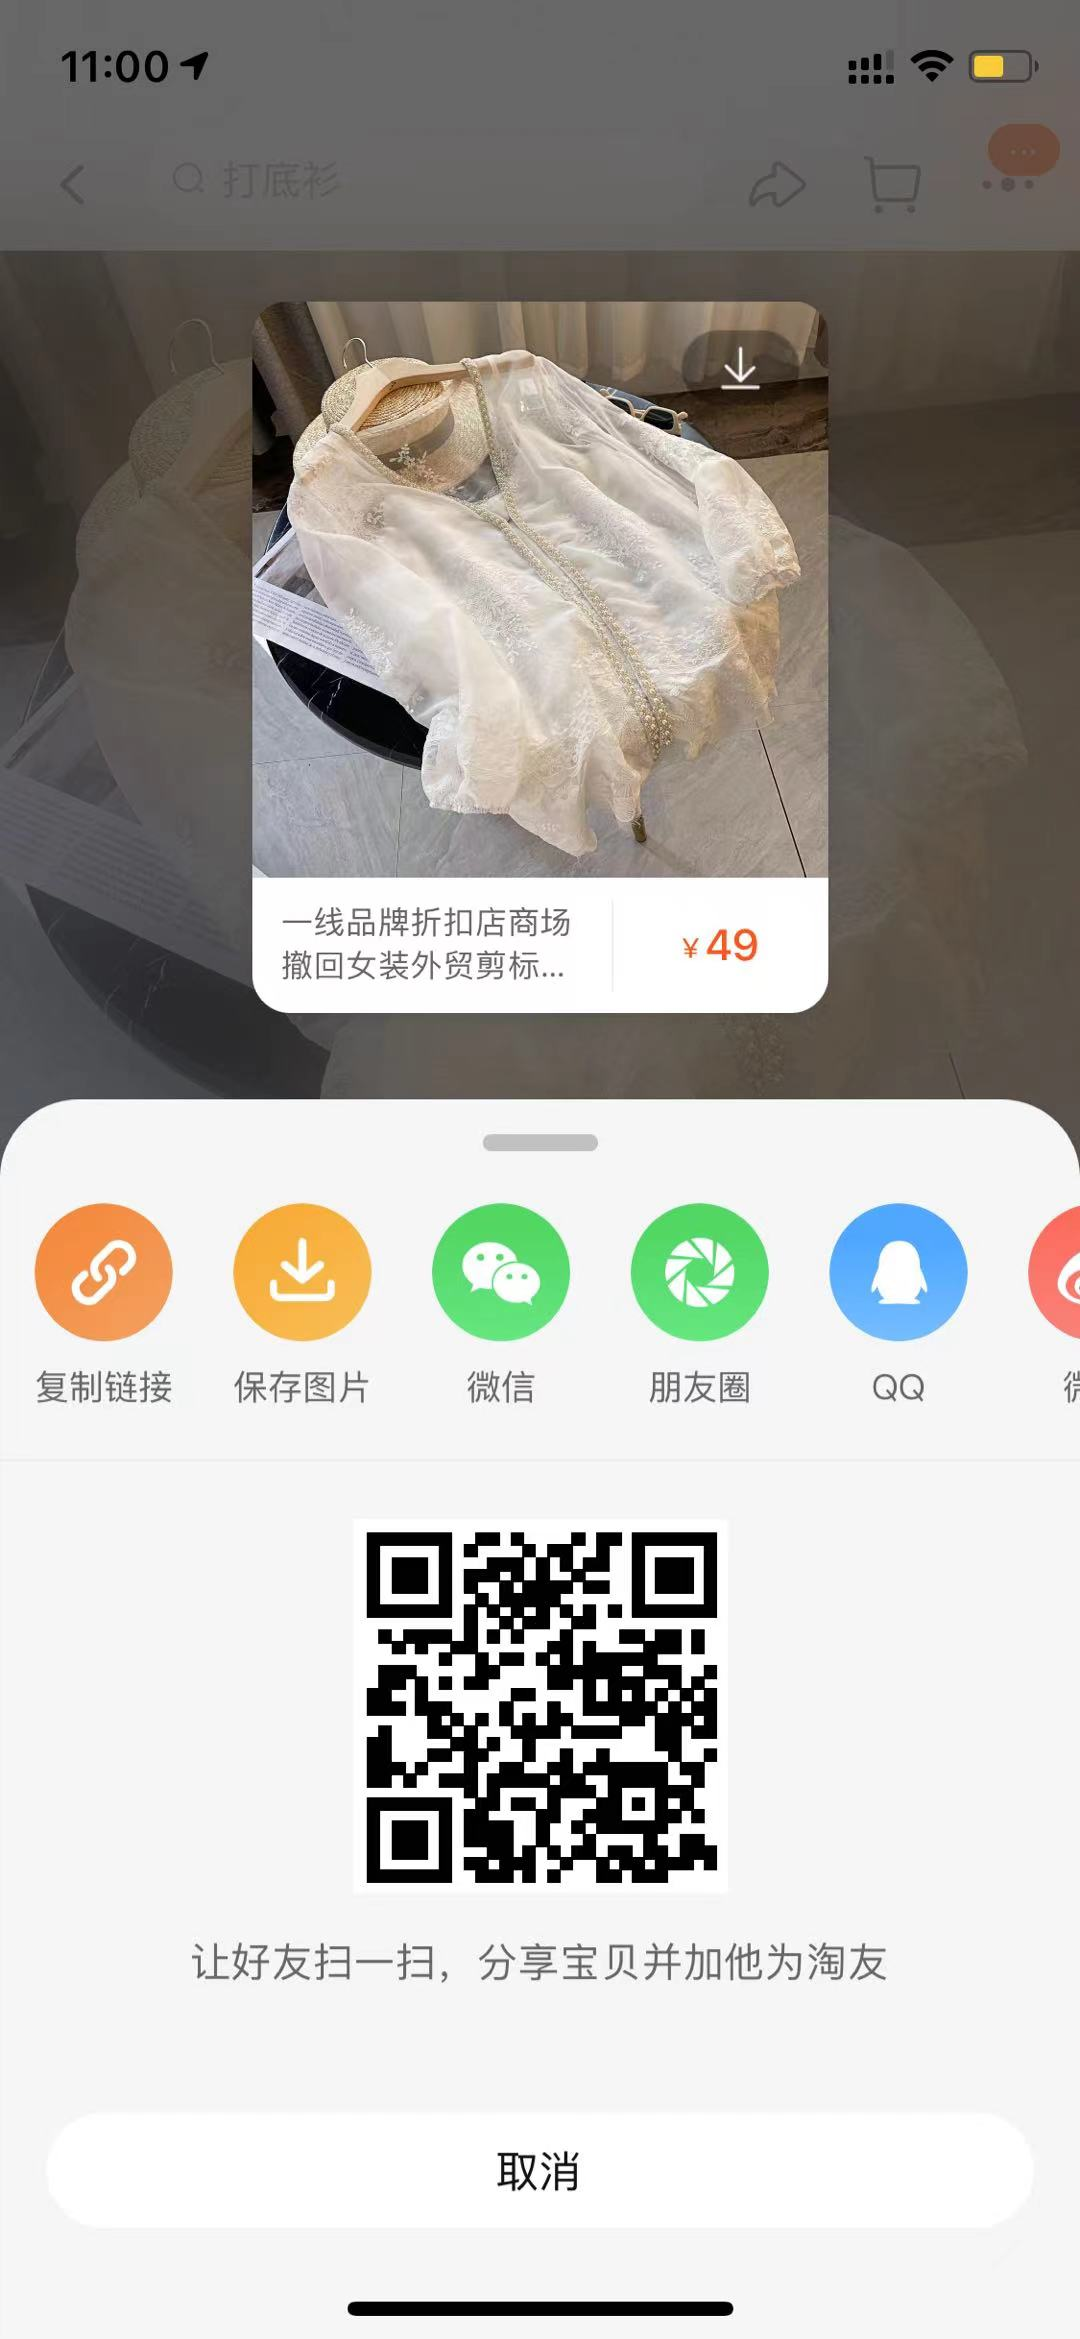 You will be able to share Taobao link via WeChat and more…